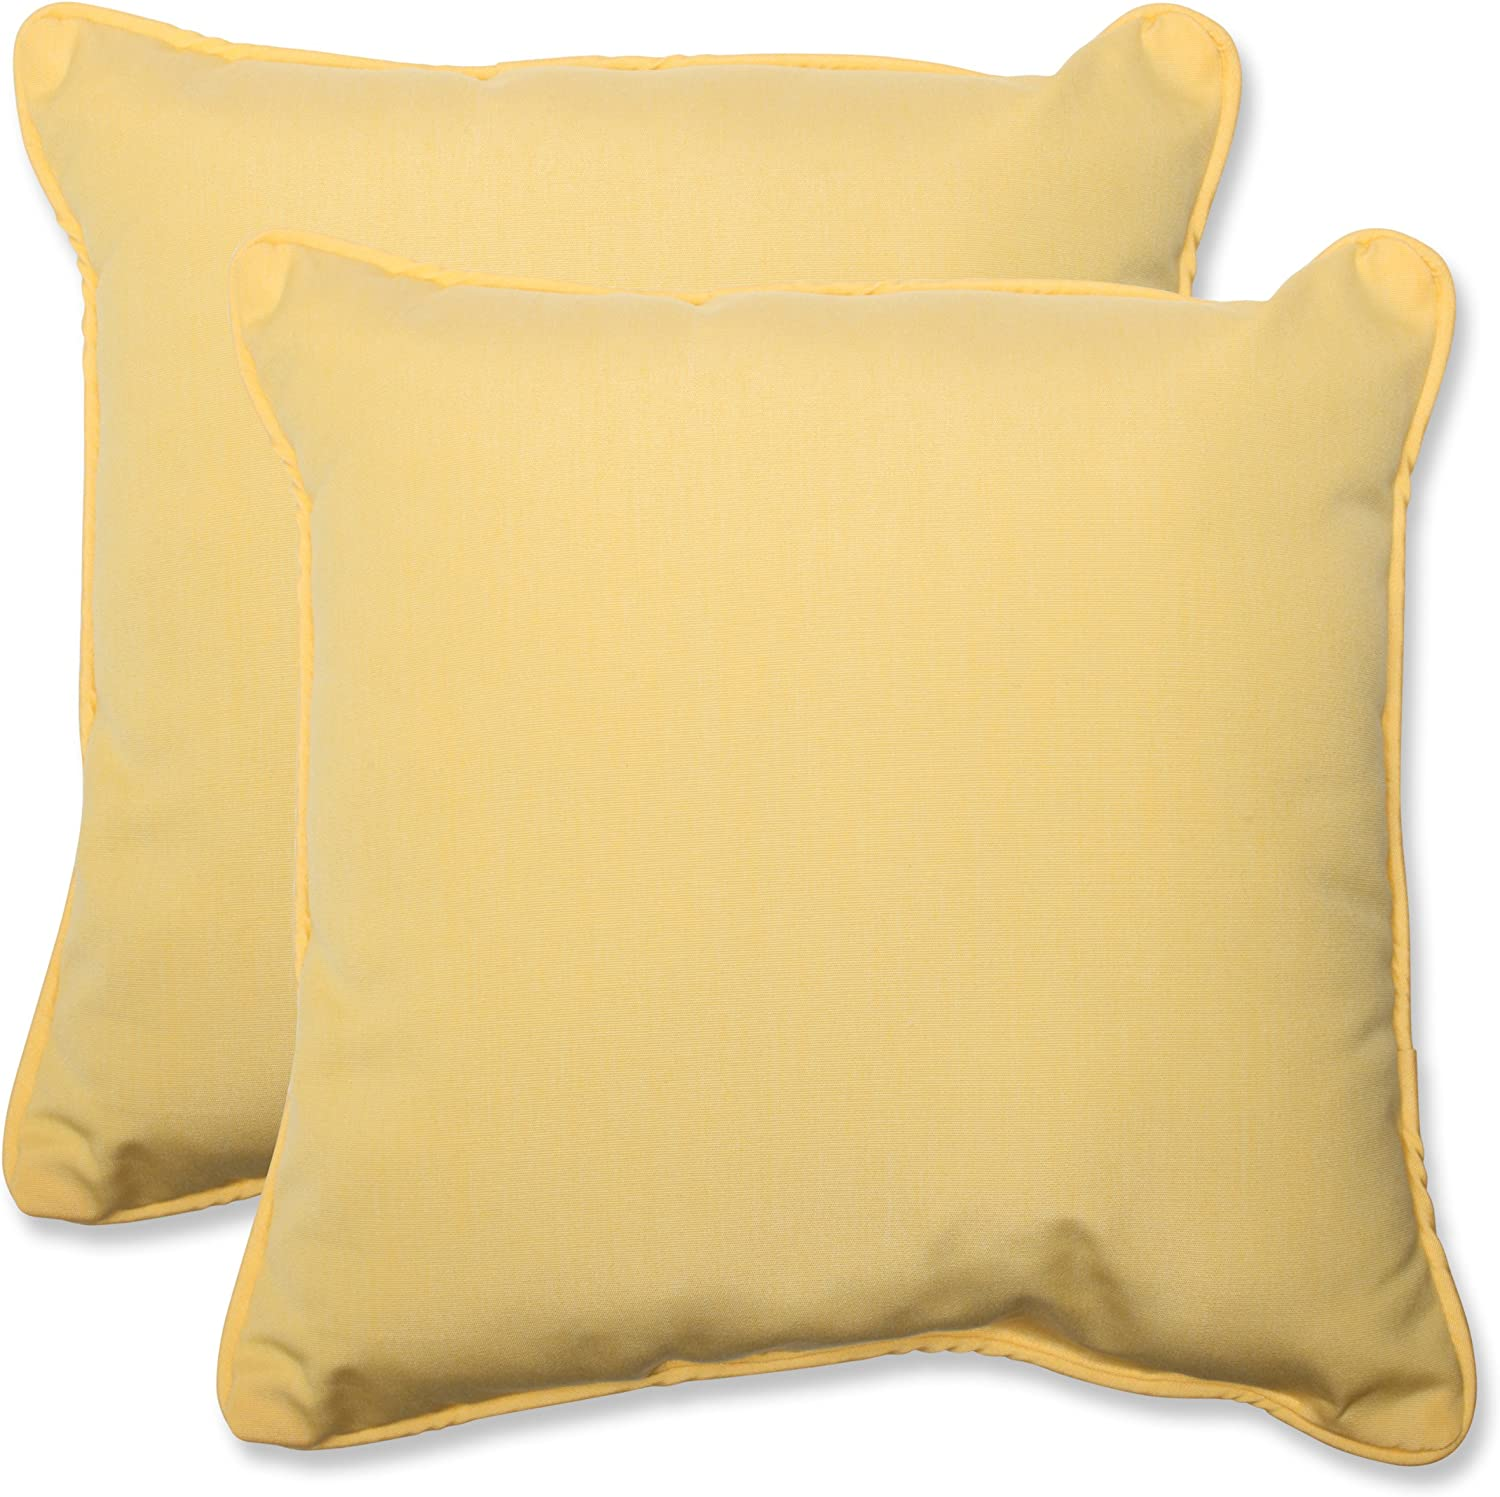 Pillow Perfect Indoor/Outdoor 18.5-inch Throw Pillow (Set of 2) with Sunbrella Canvas Buttercup Fabric, 18.5 in. L X 18.5 in. W X 5 in. D,Yellow